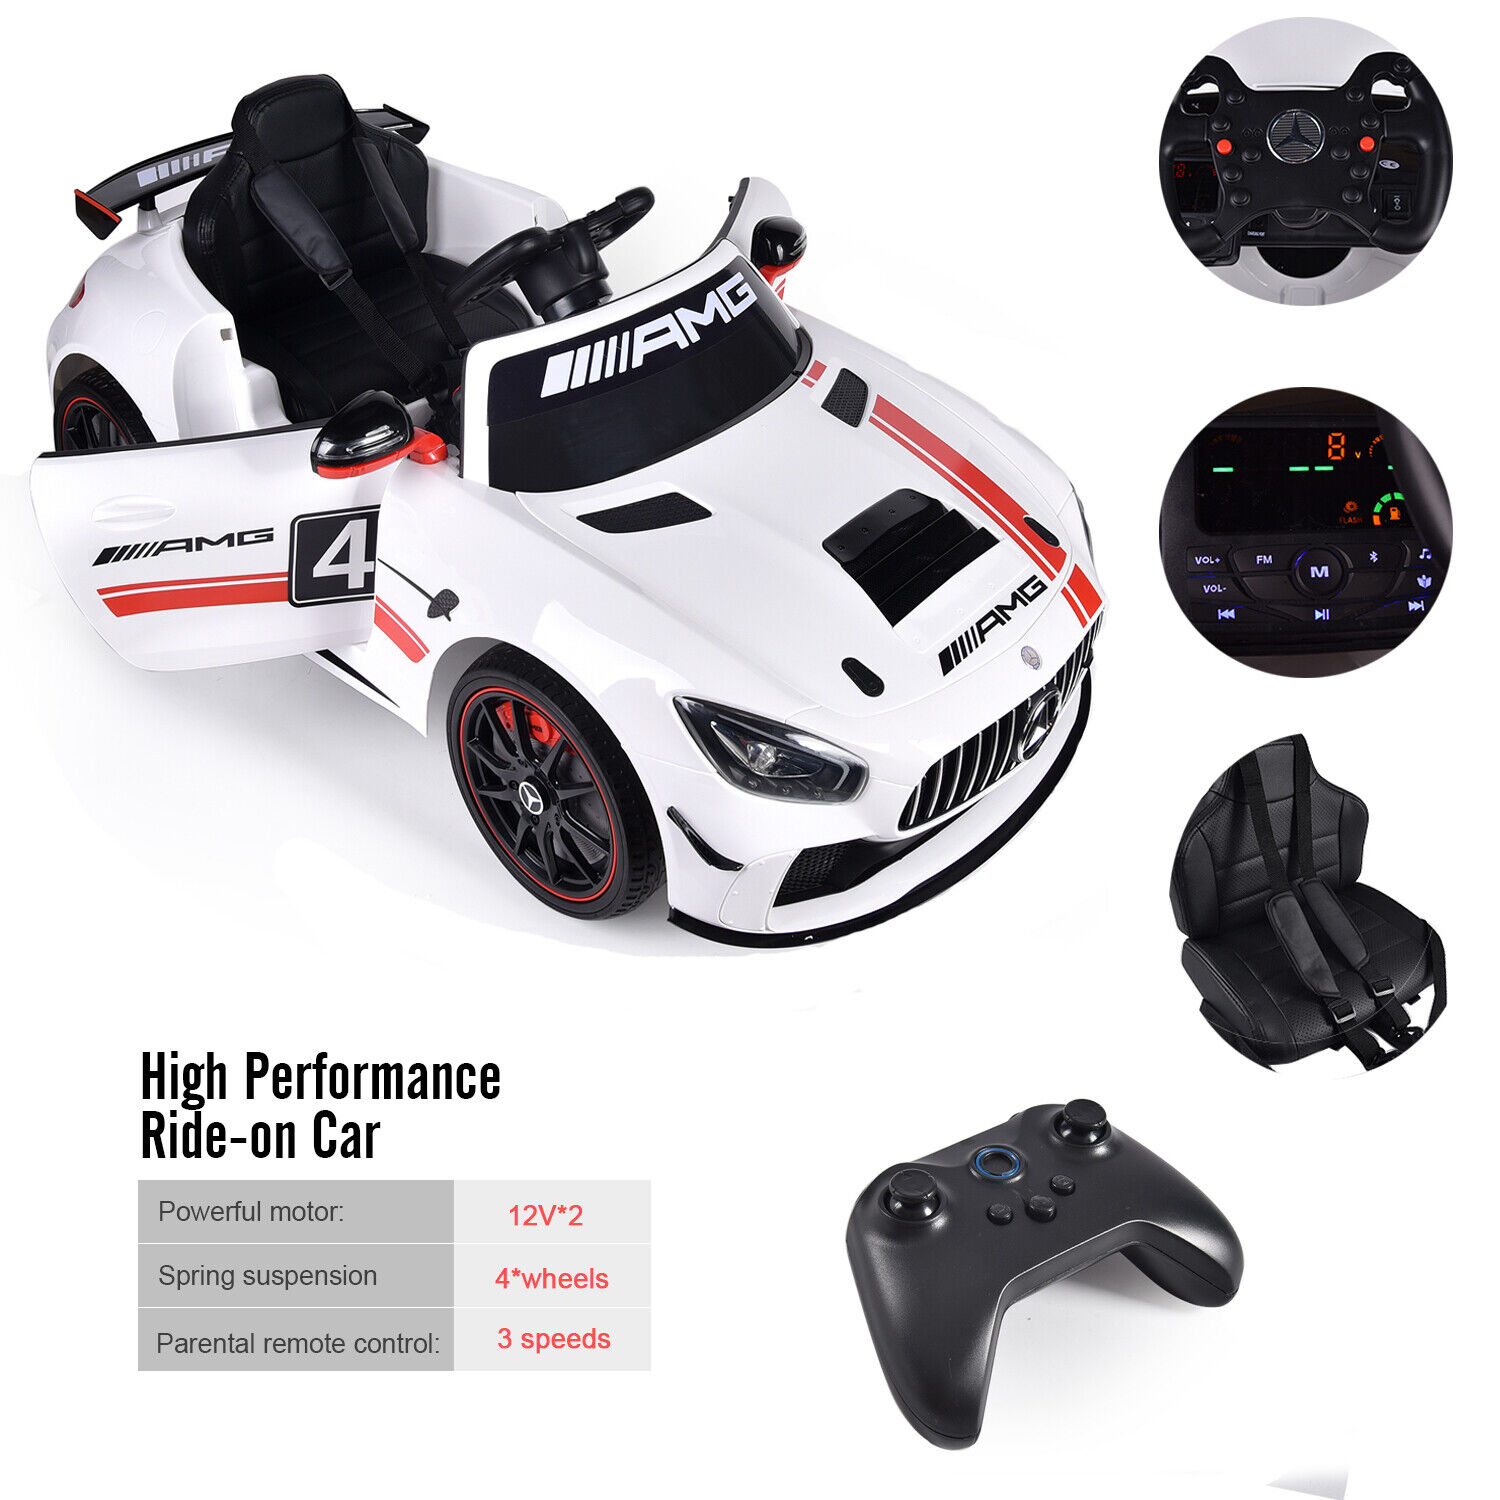 12v mercedes amg g65 ride on electric power car for kids wheel with remote c for sale online ebay ebay